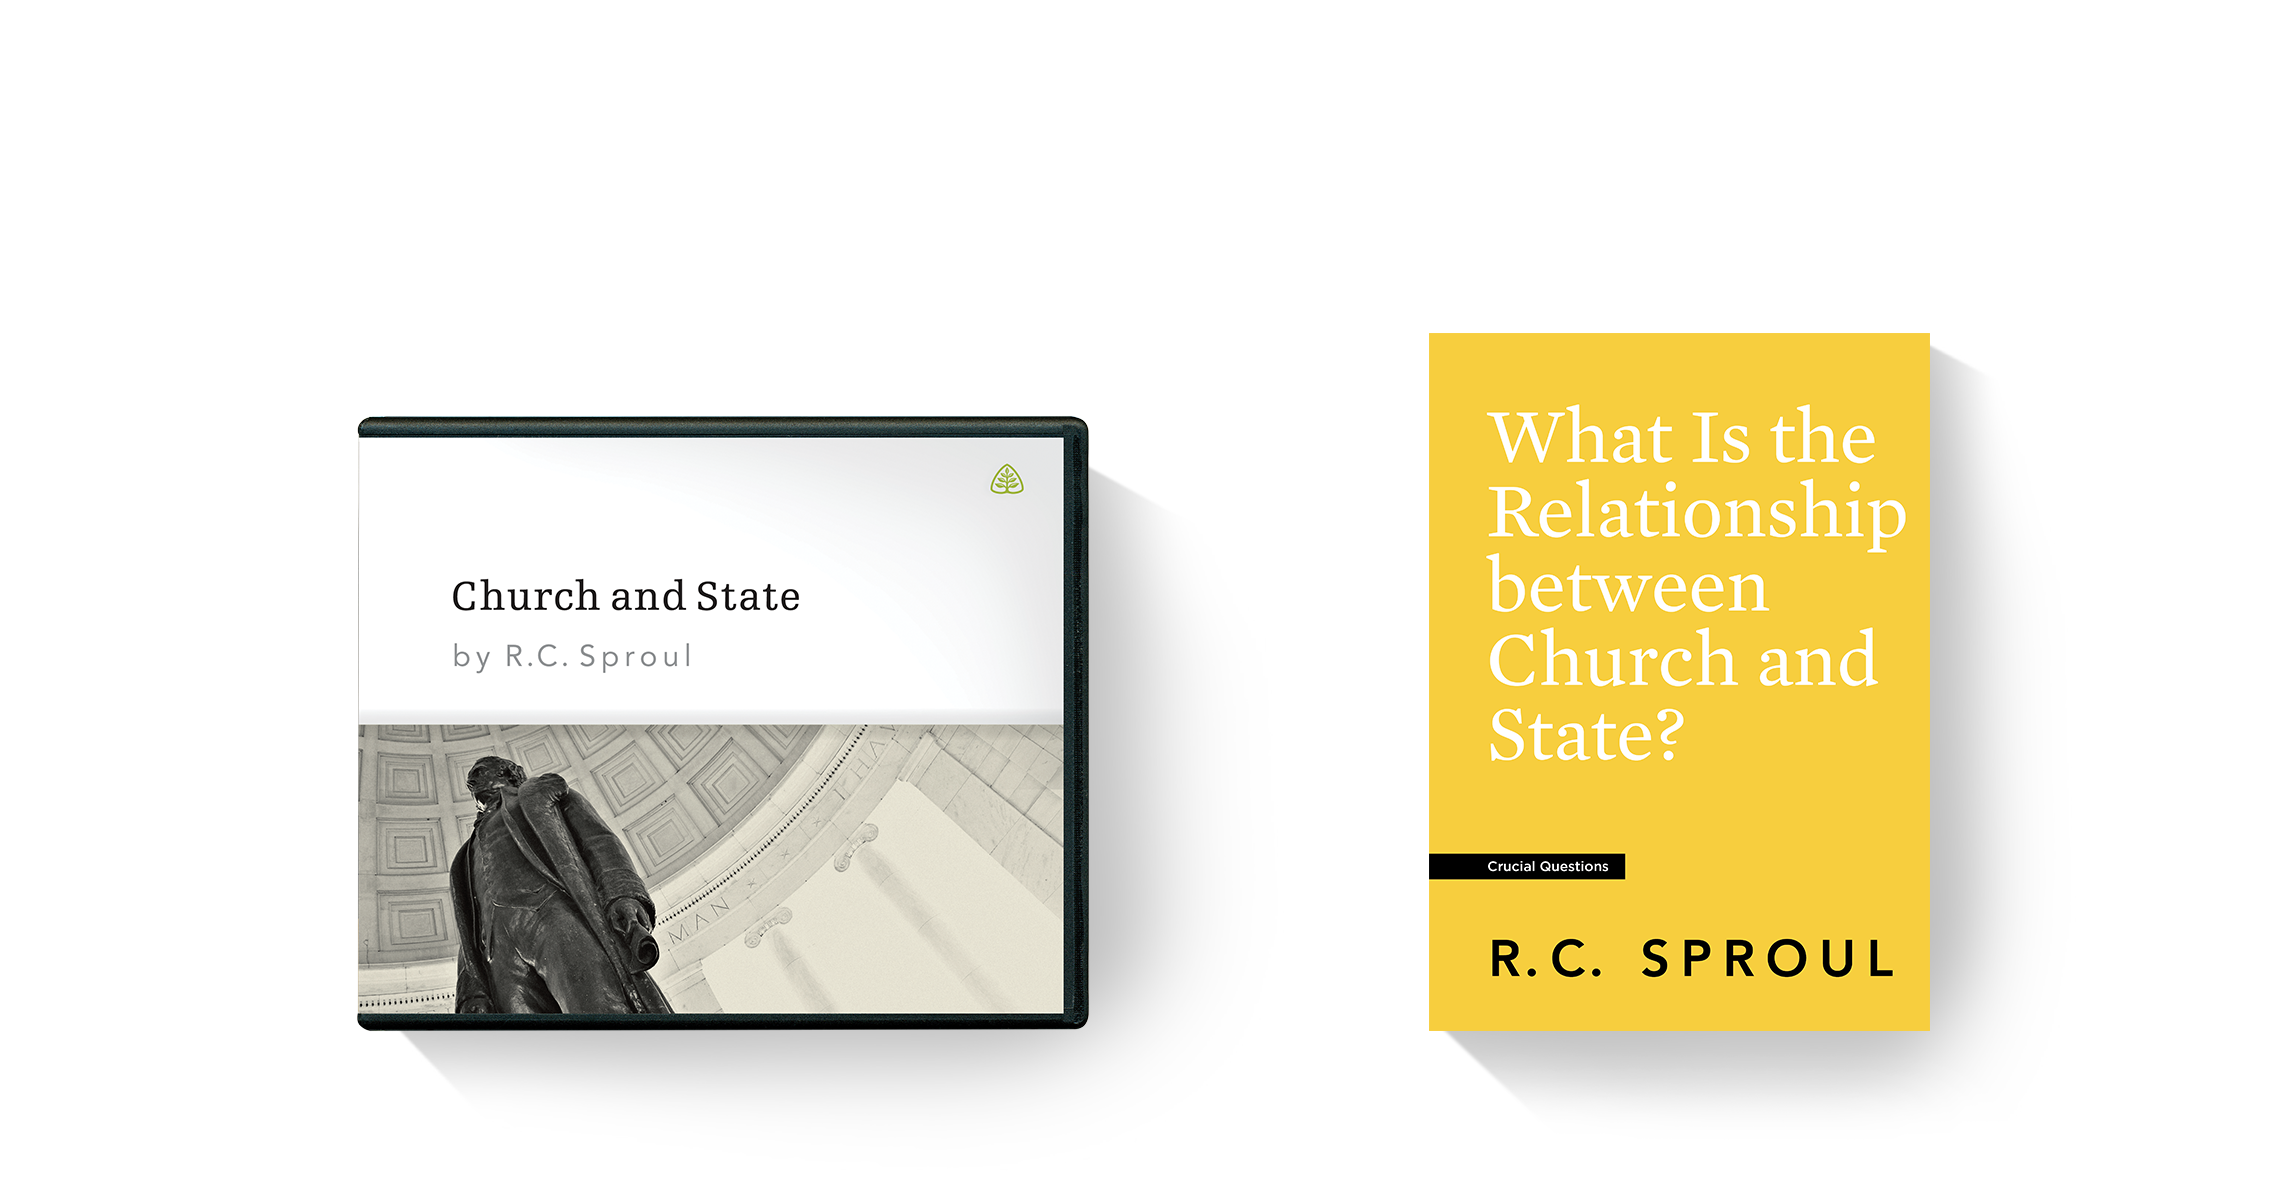 Church & State and What Is the Relationship Church and State?